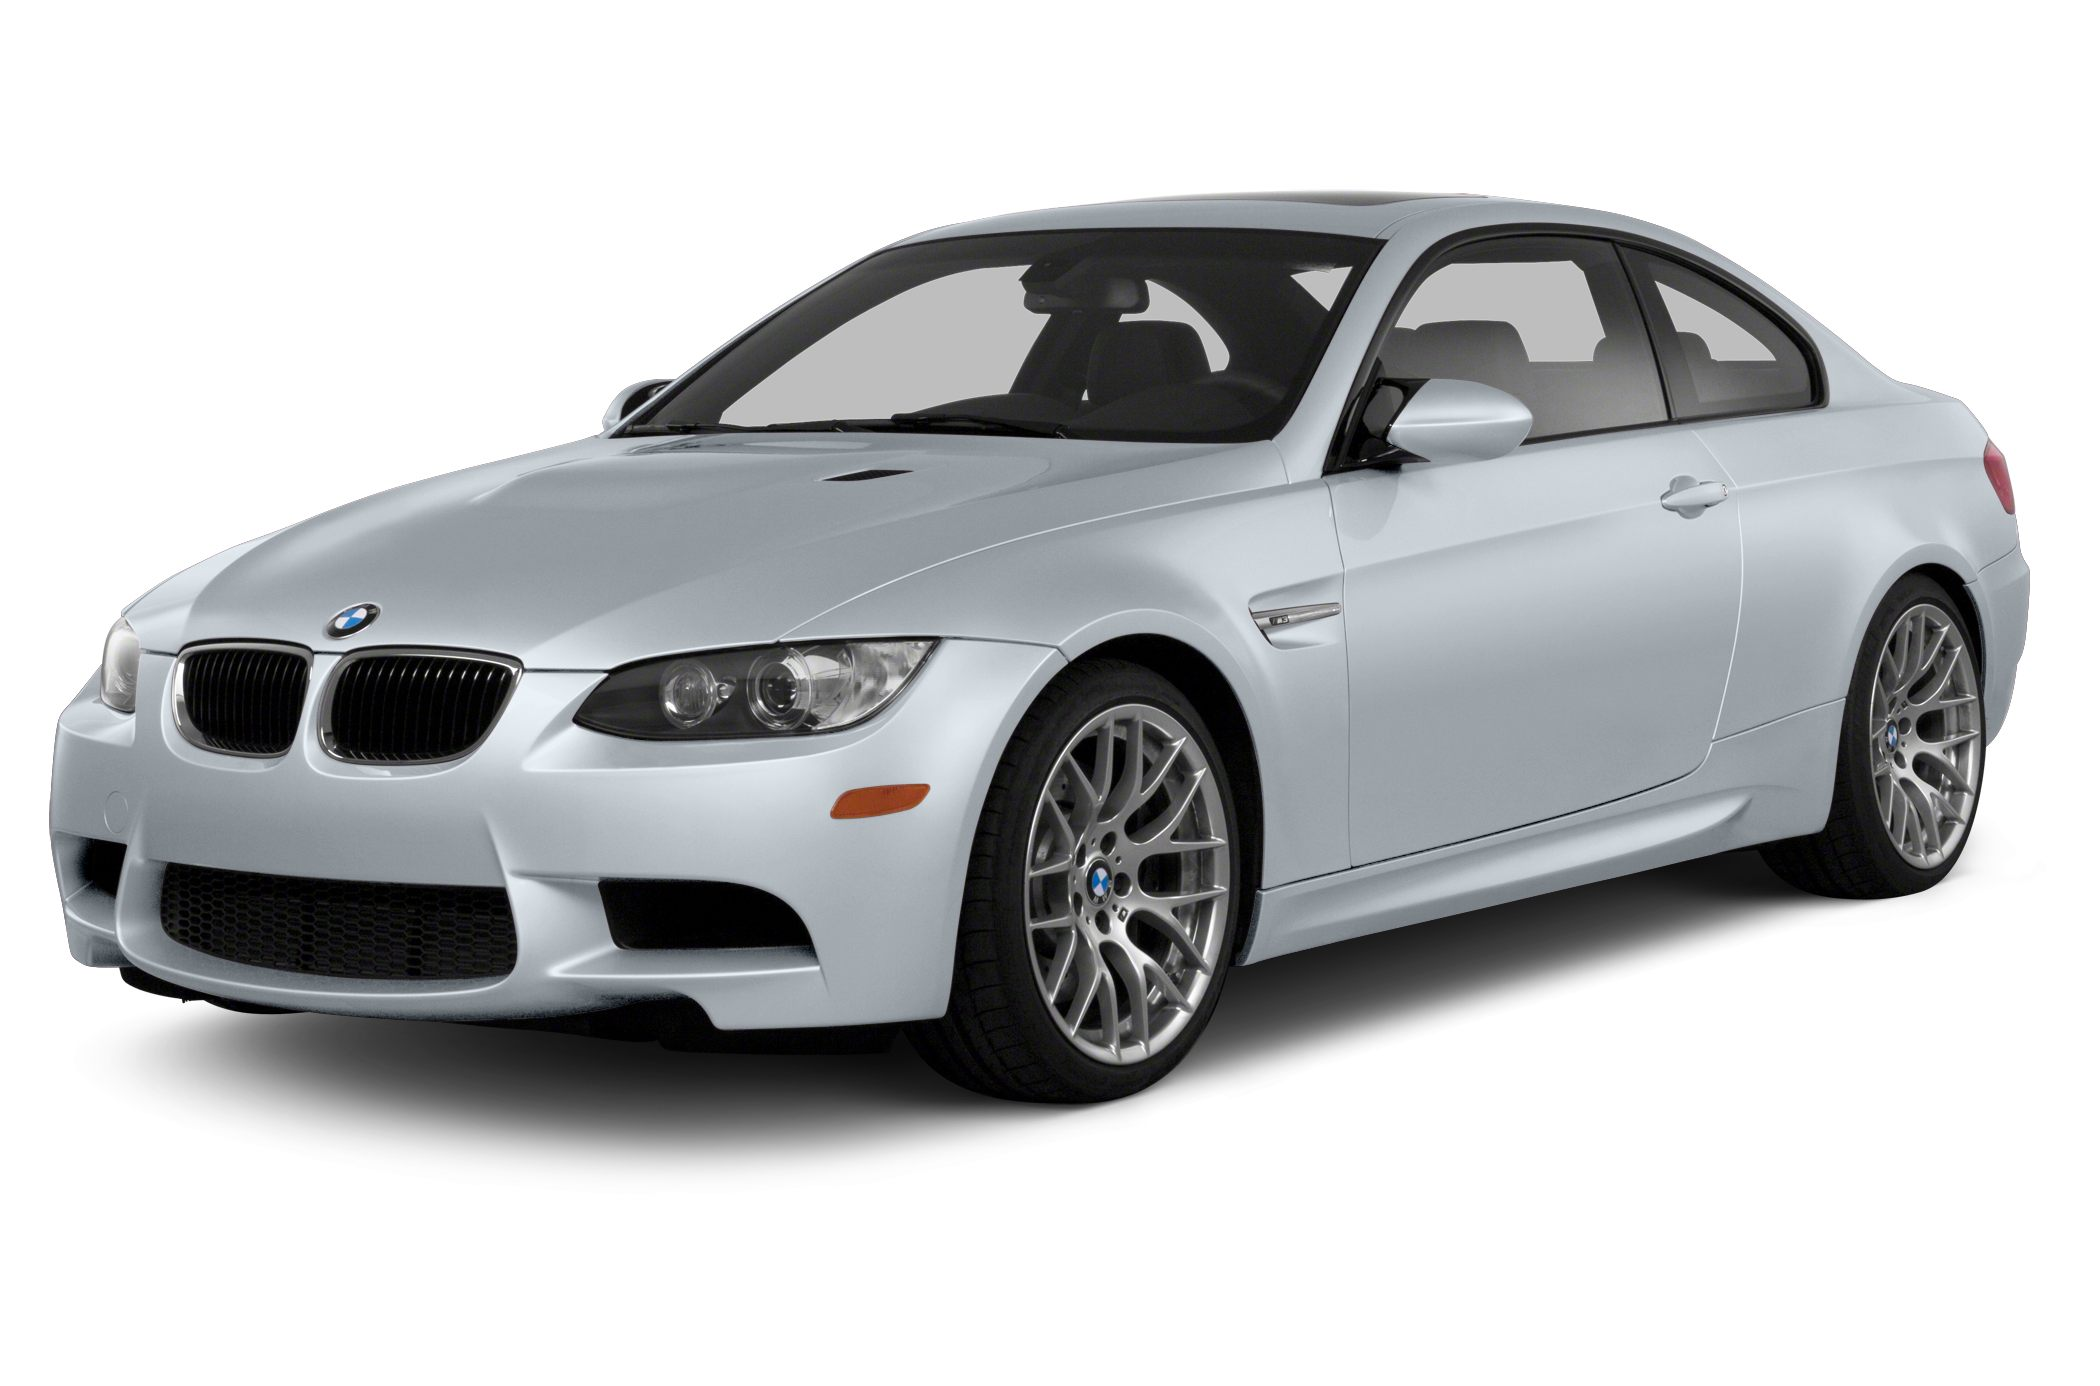 2013 BMW M3